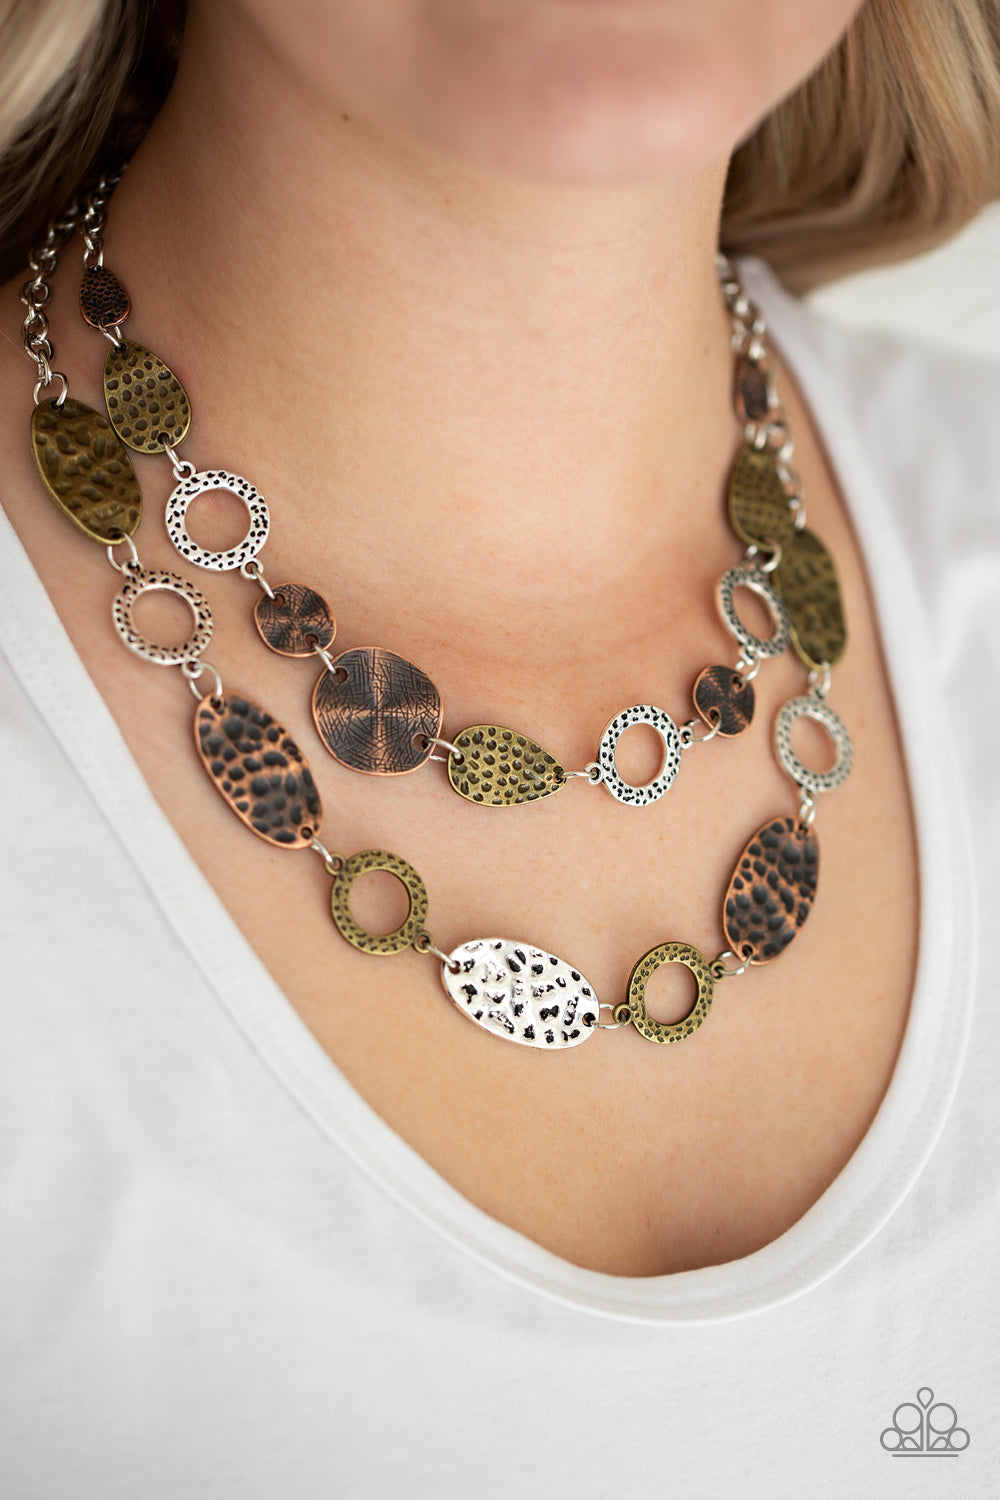 Paparazzi Jewelry & Accessories - Trippin On Texture - Multi Necklace. Bling By Titia Boutique